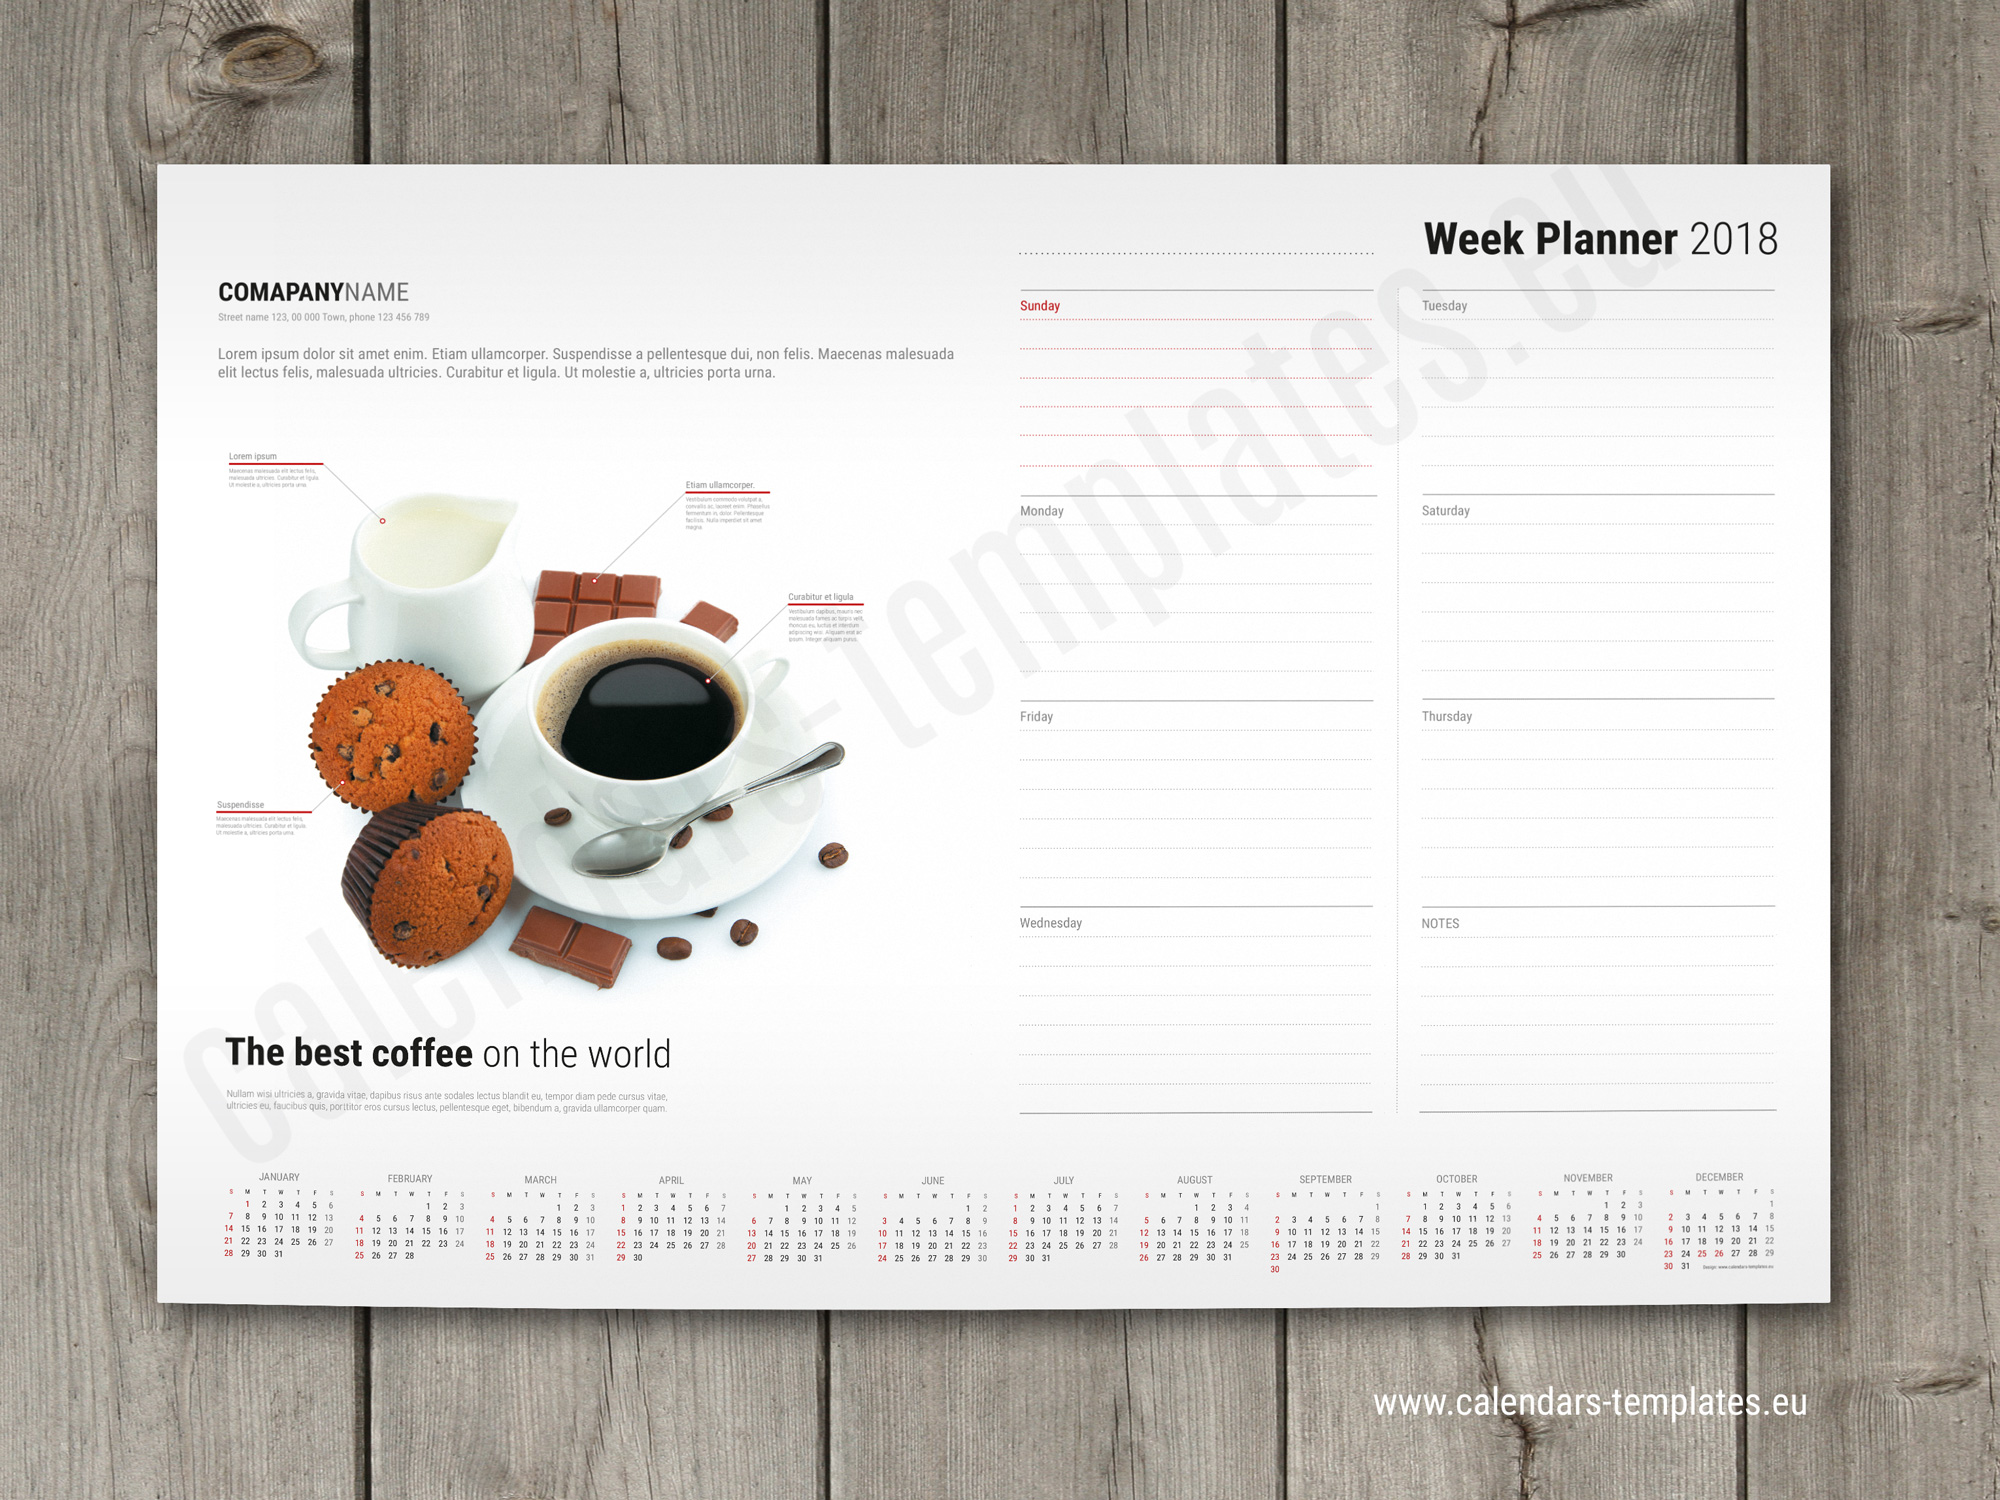 weekly calendar pad with image